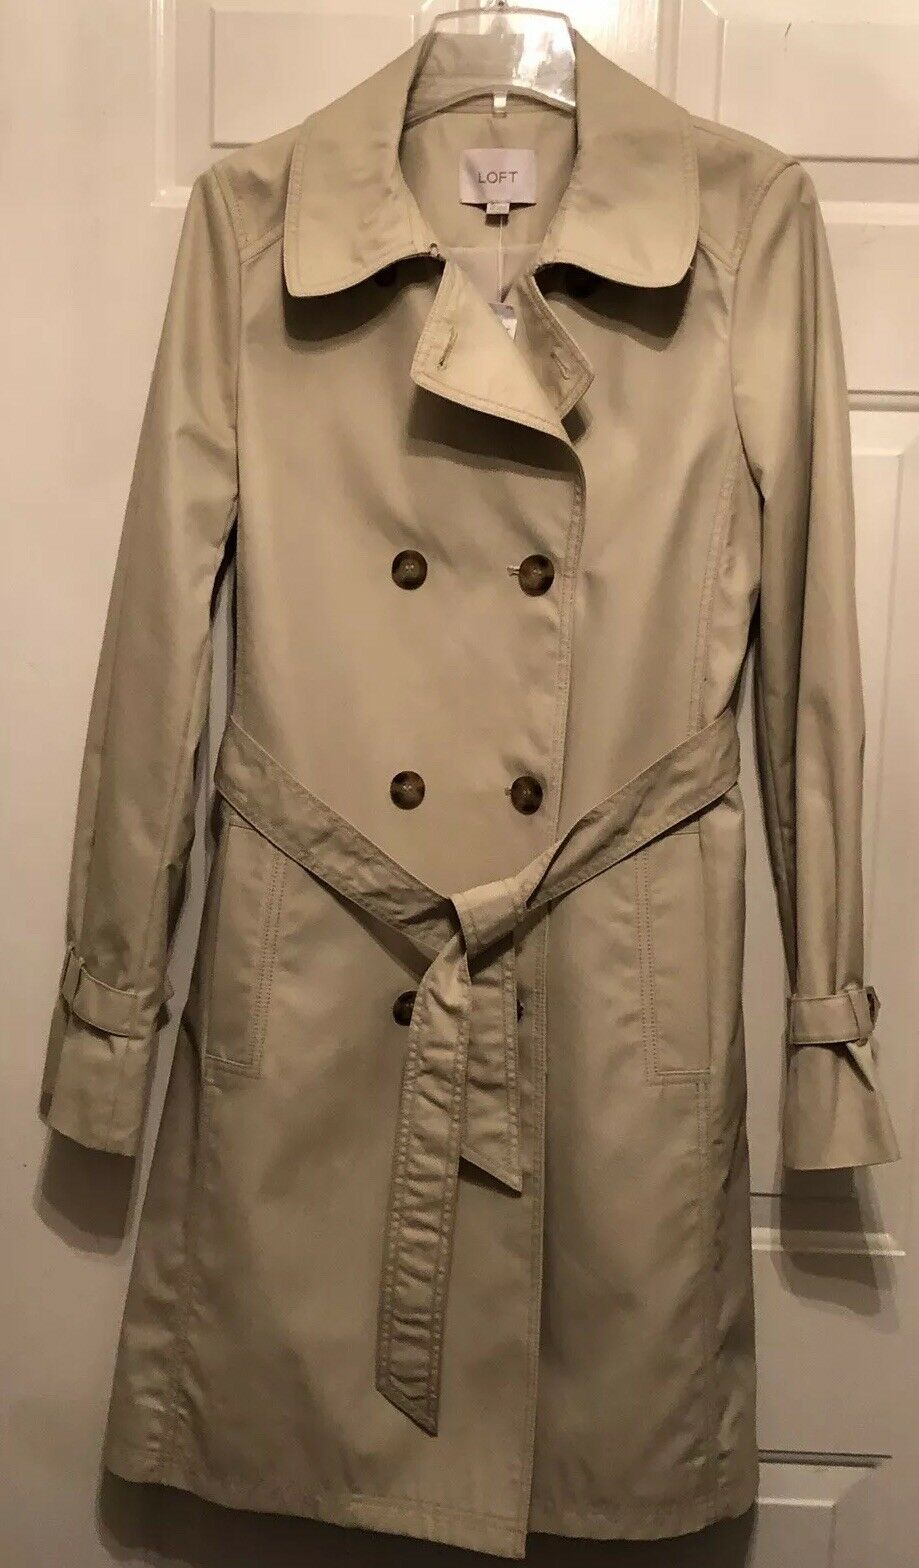 NWT Ann Taylor Loft Beige Tan Trench Double Breasted Coat With Belt Size 6 Tall